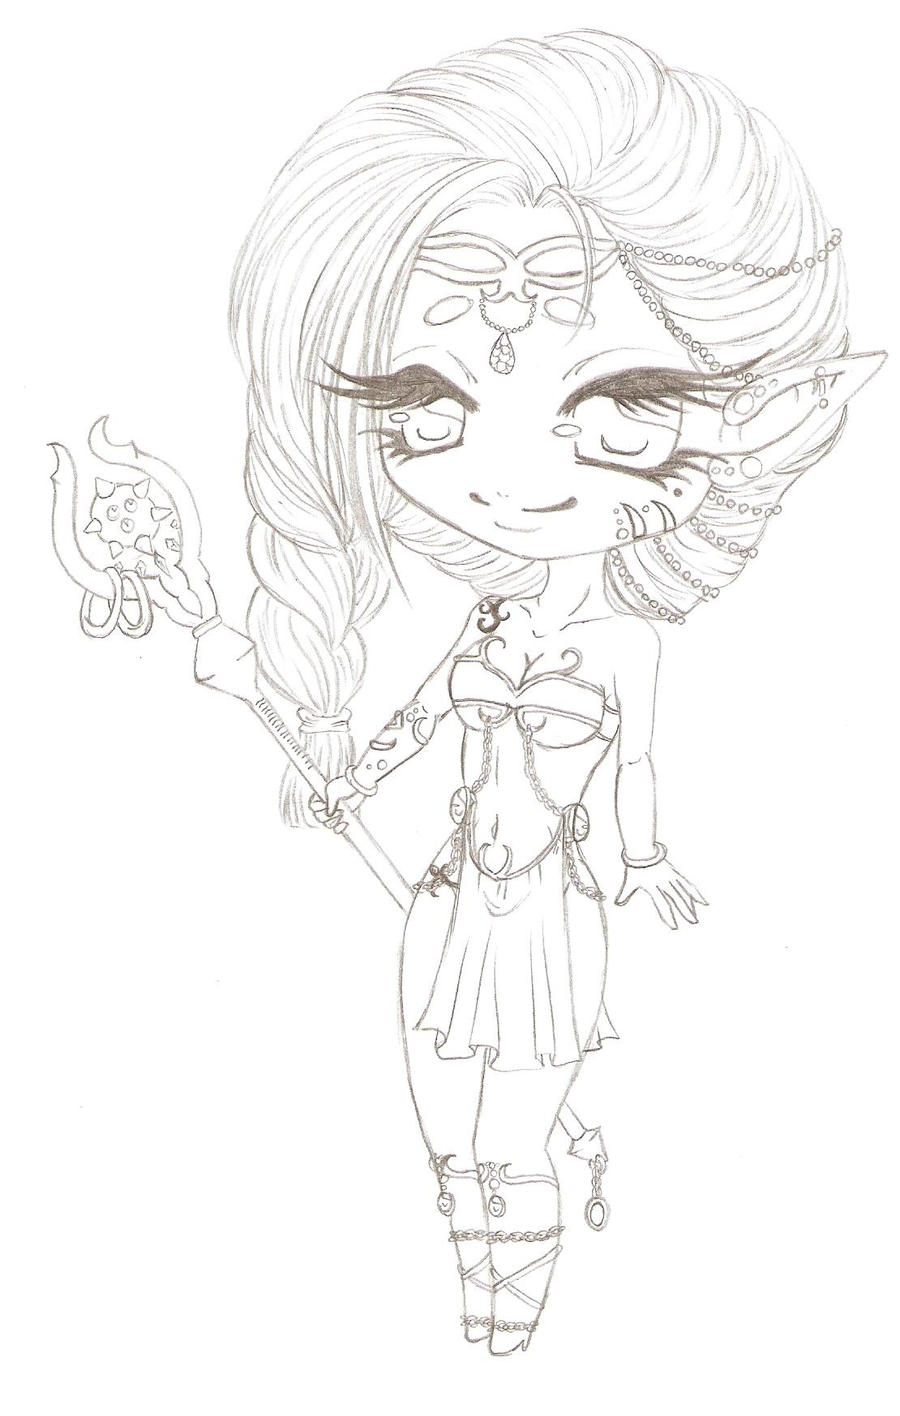 Elf Girl Adoptable chibi WIP by StrawberryDreamz